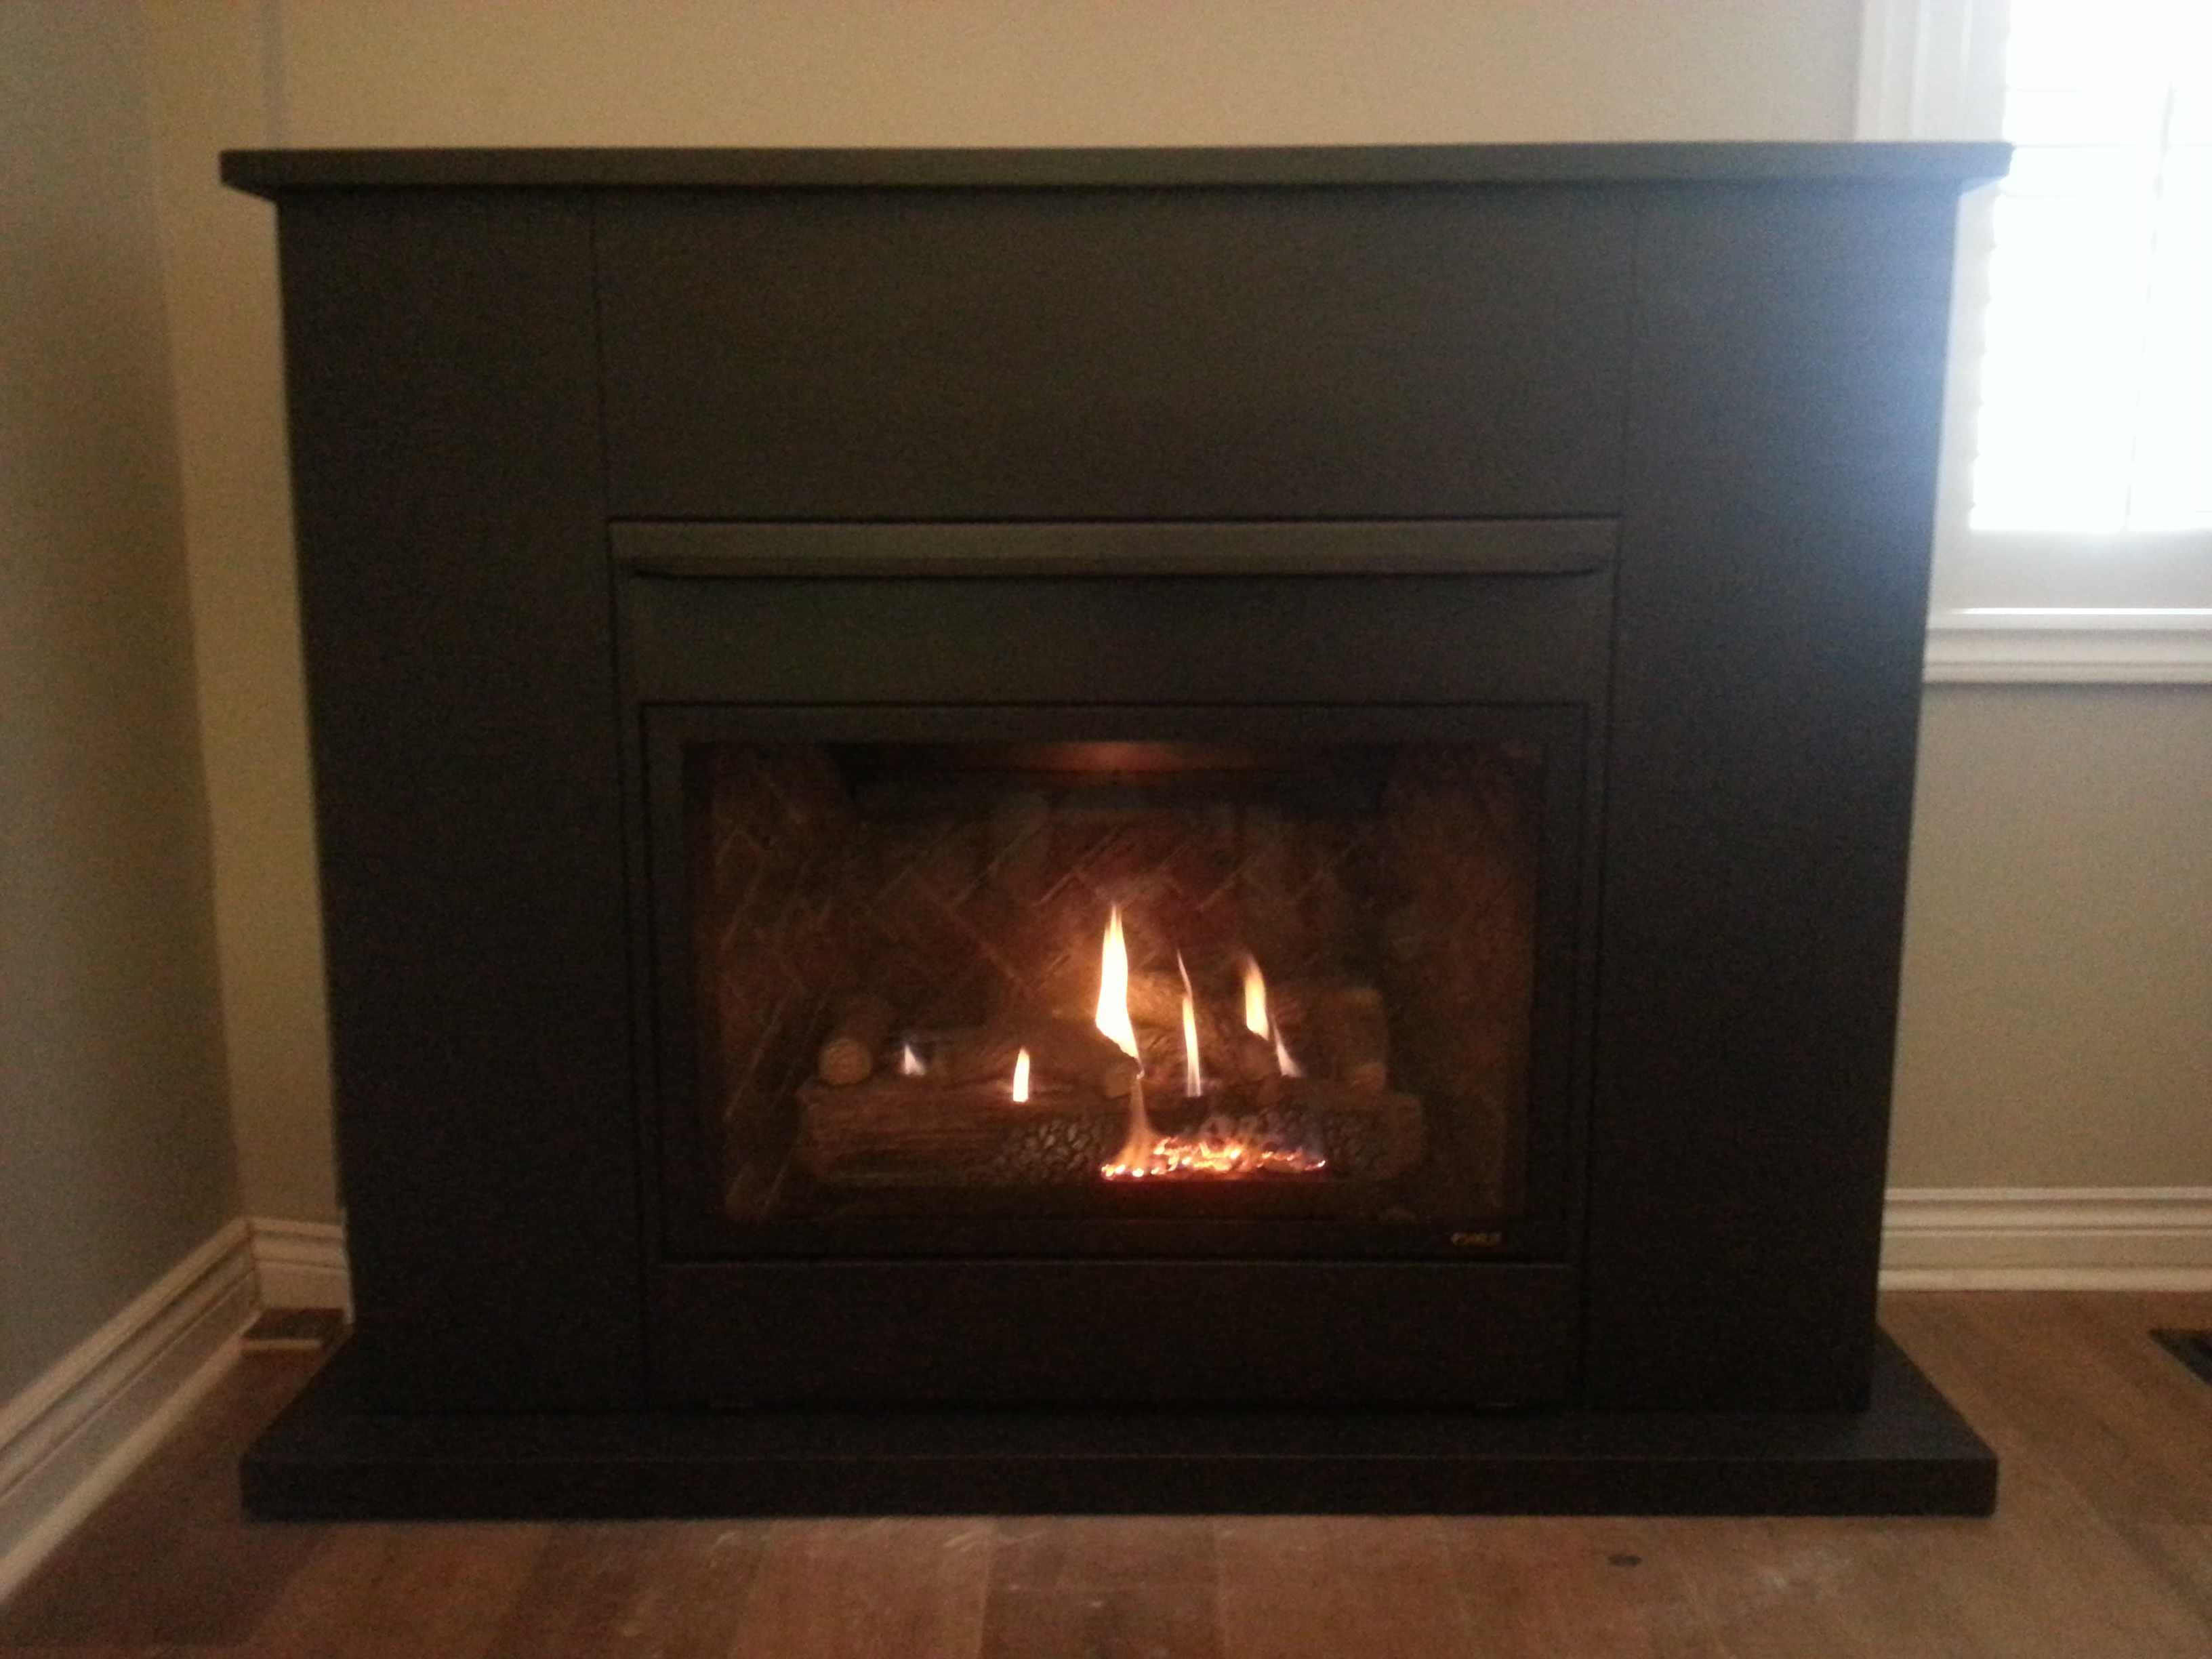 install installation cool direct gas on tips vented fireplace design to ideas excellent decor best modern vent